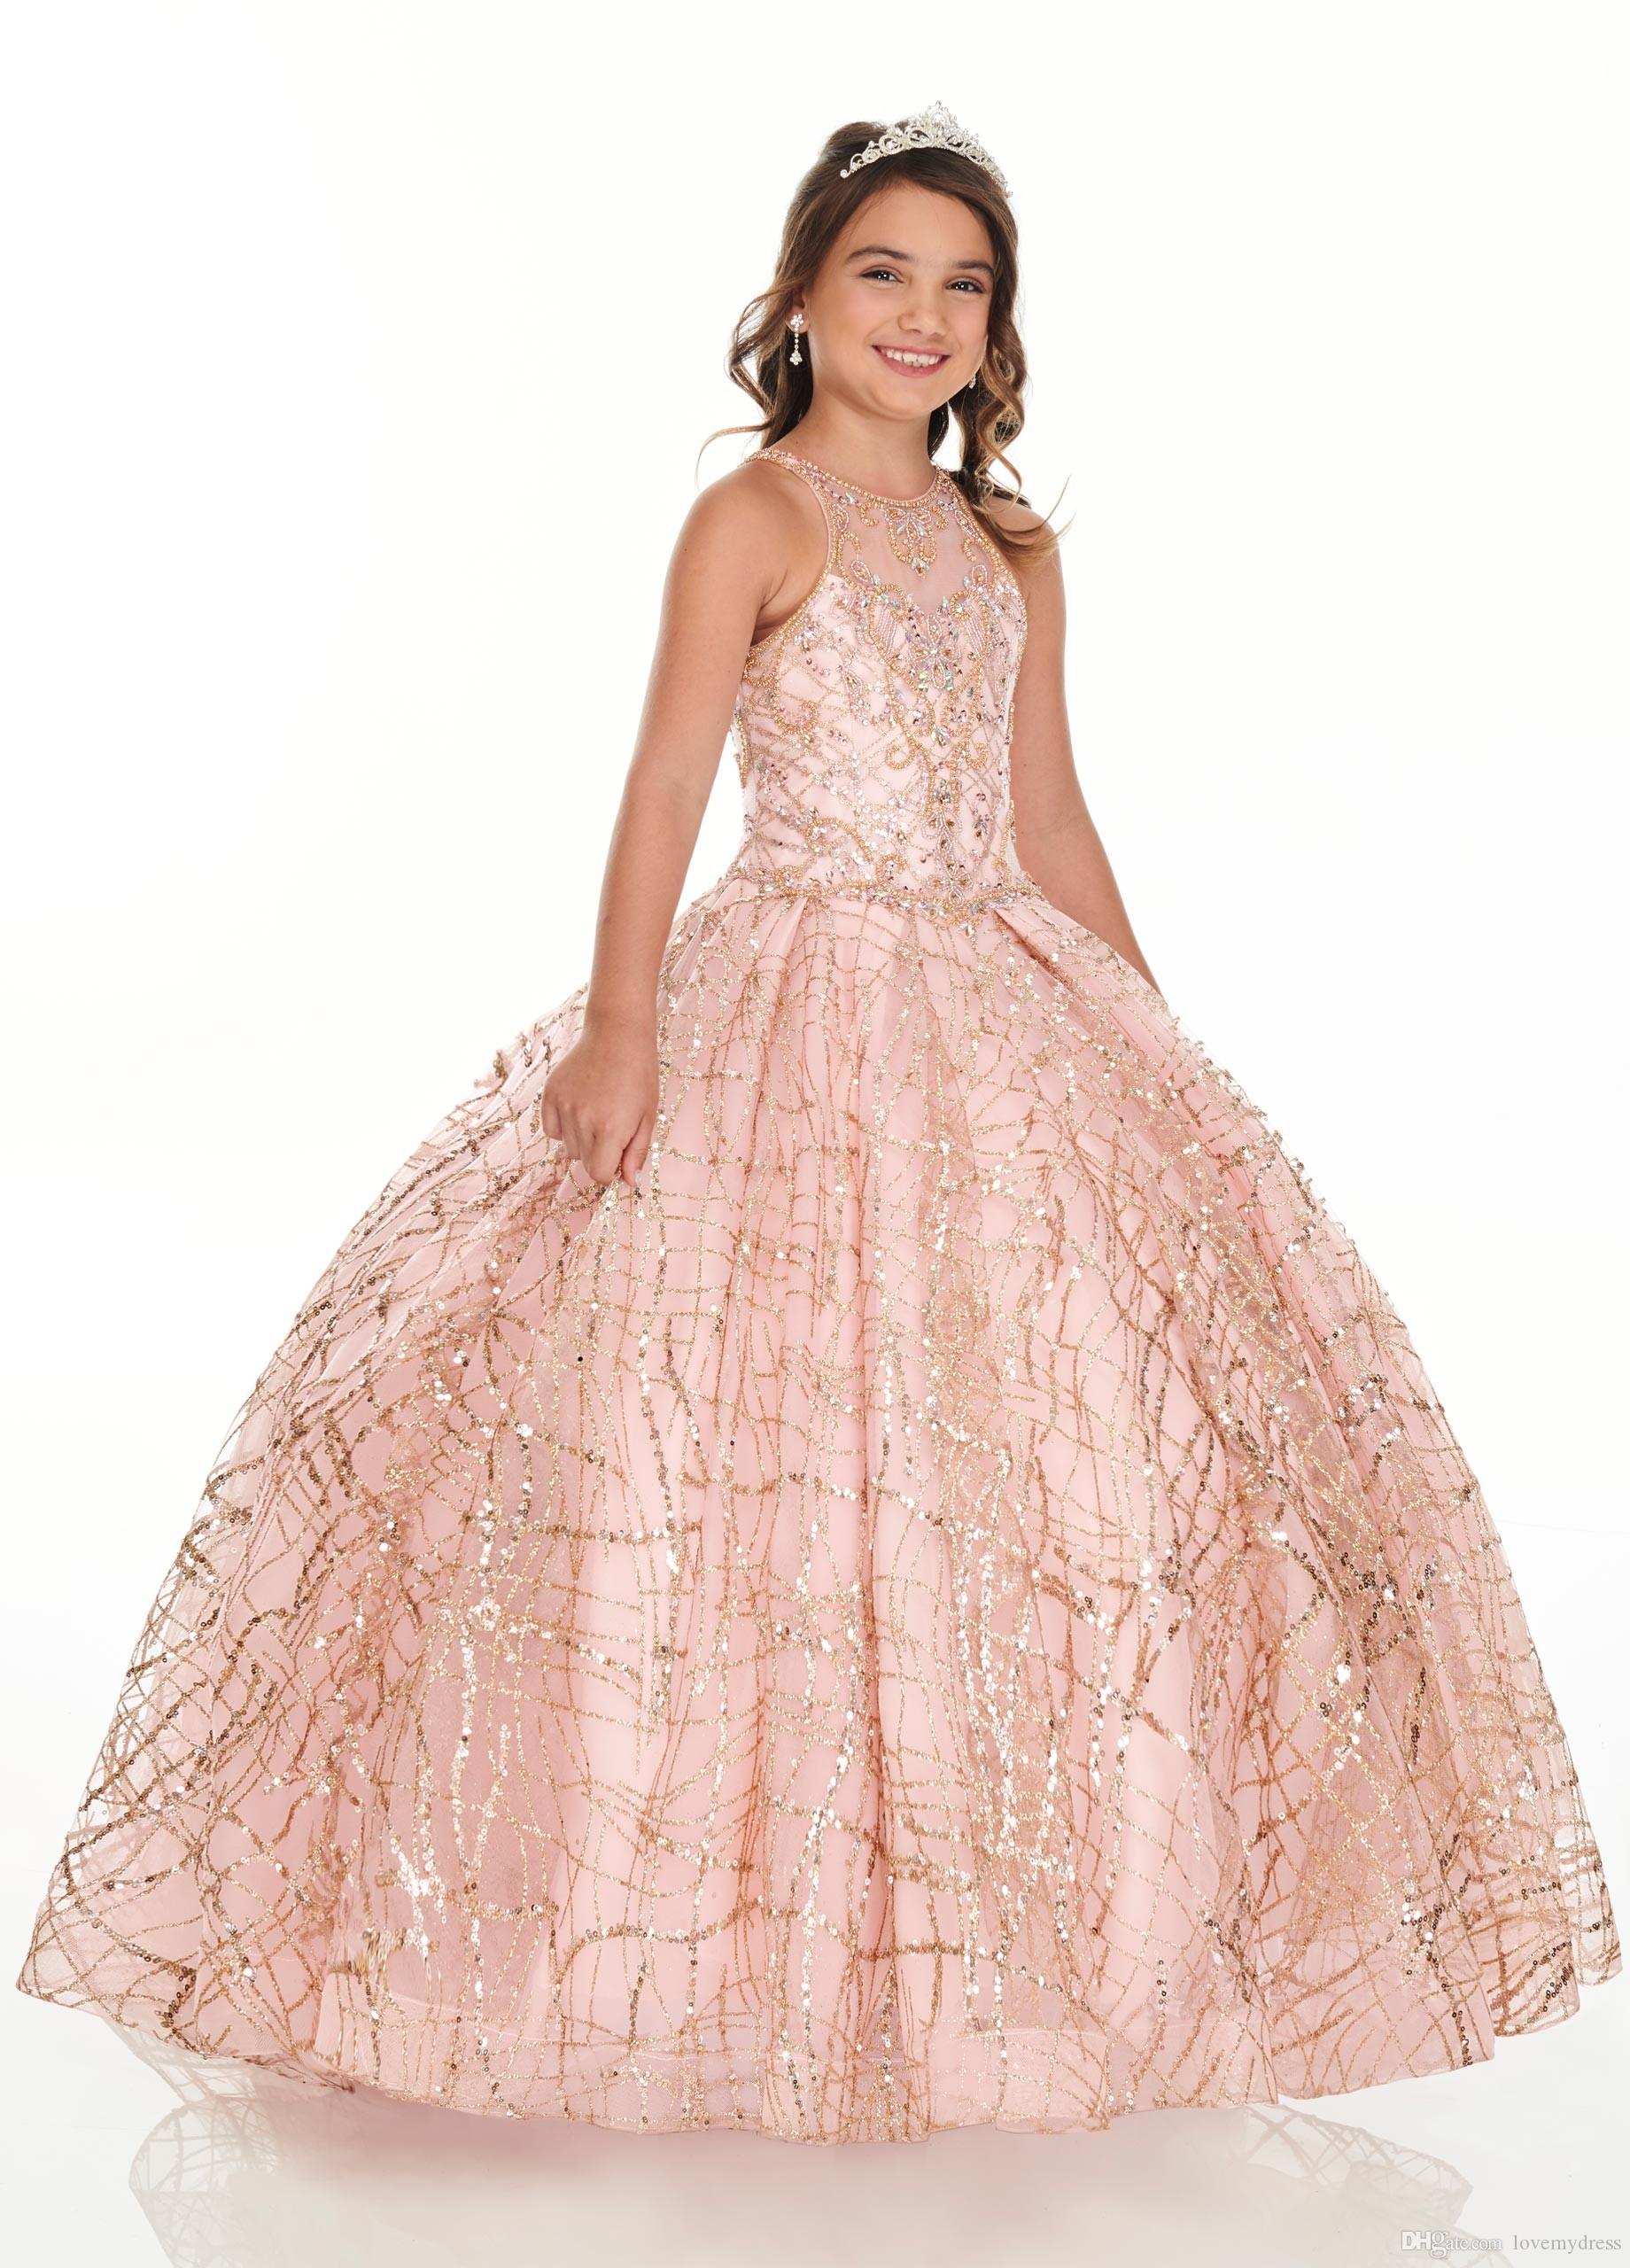 2020 Bling Rose Gold Mini Quinceanera Pageant Dresses For Little Girls Glitter Tulle Jewel Rhinestones Beaded Party Dress Toddle Dresses Aliexpress